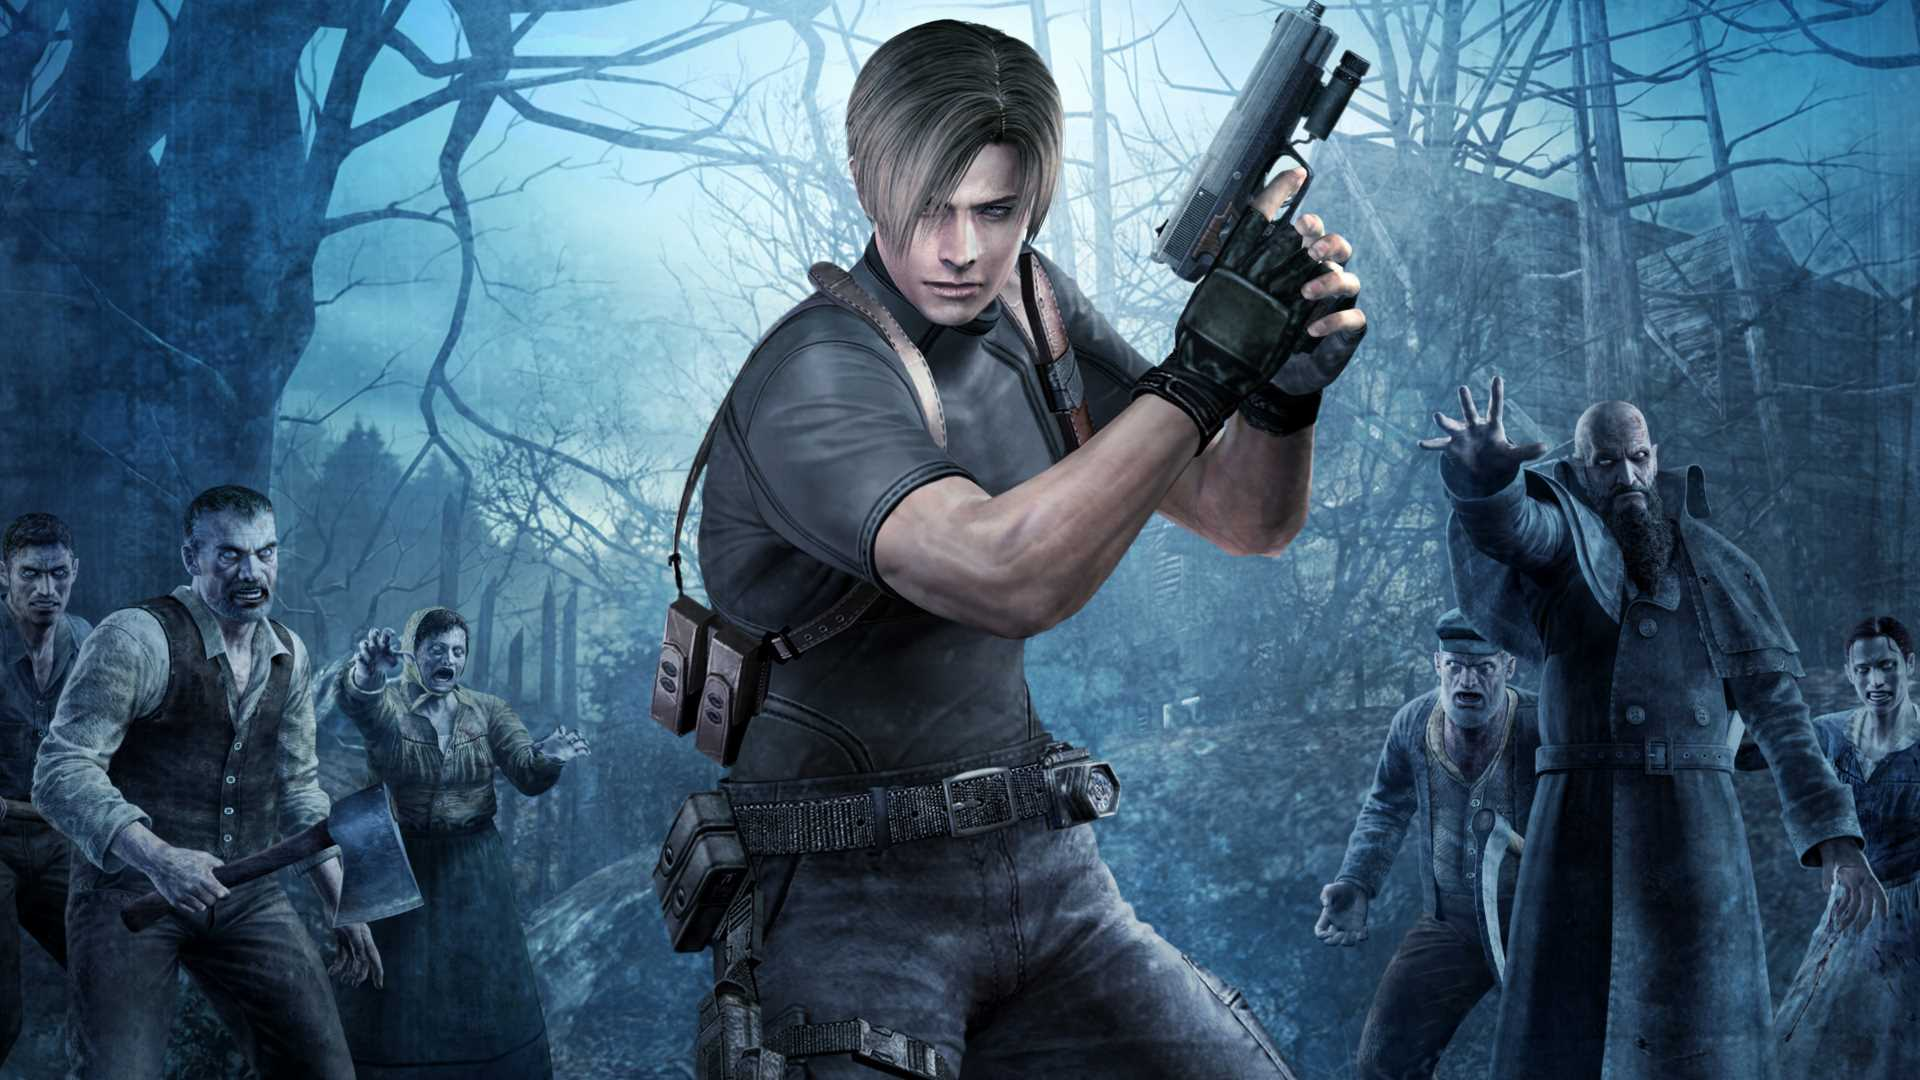 Ranking The Resident Evil Games From Worst To Best Godisageek Com